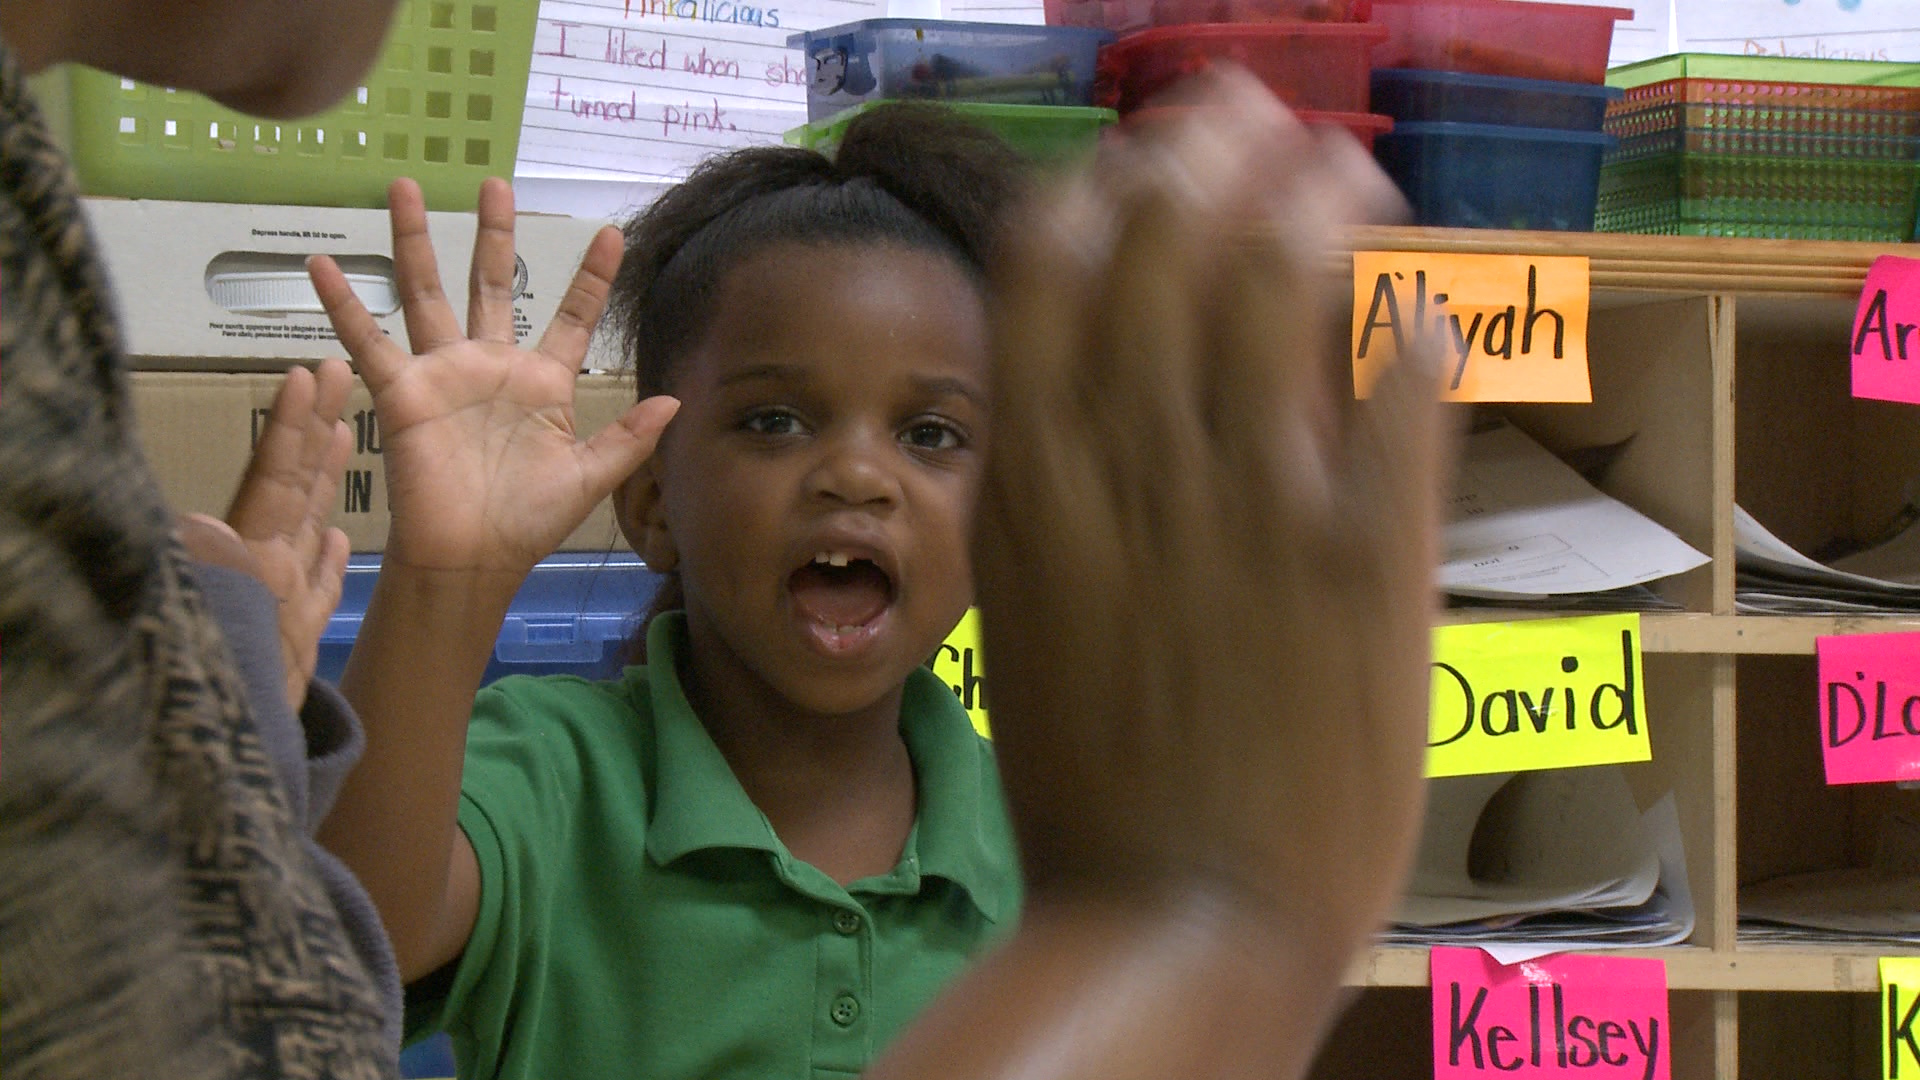 A young African American girl who is missing a tooth and raising her hand in class